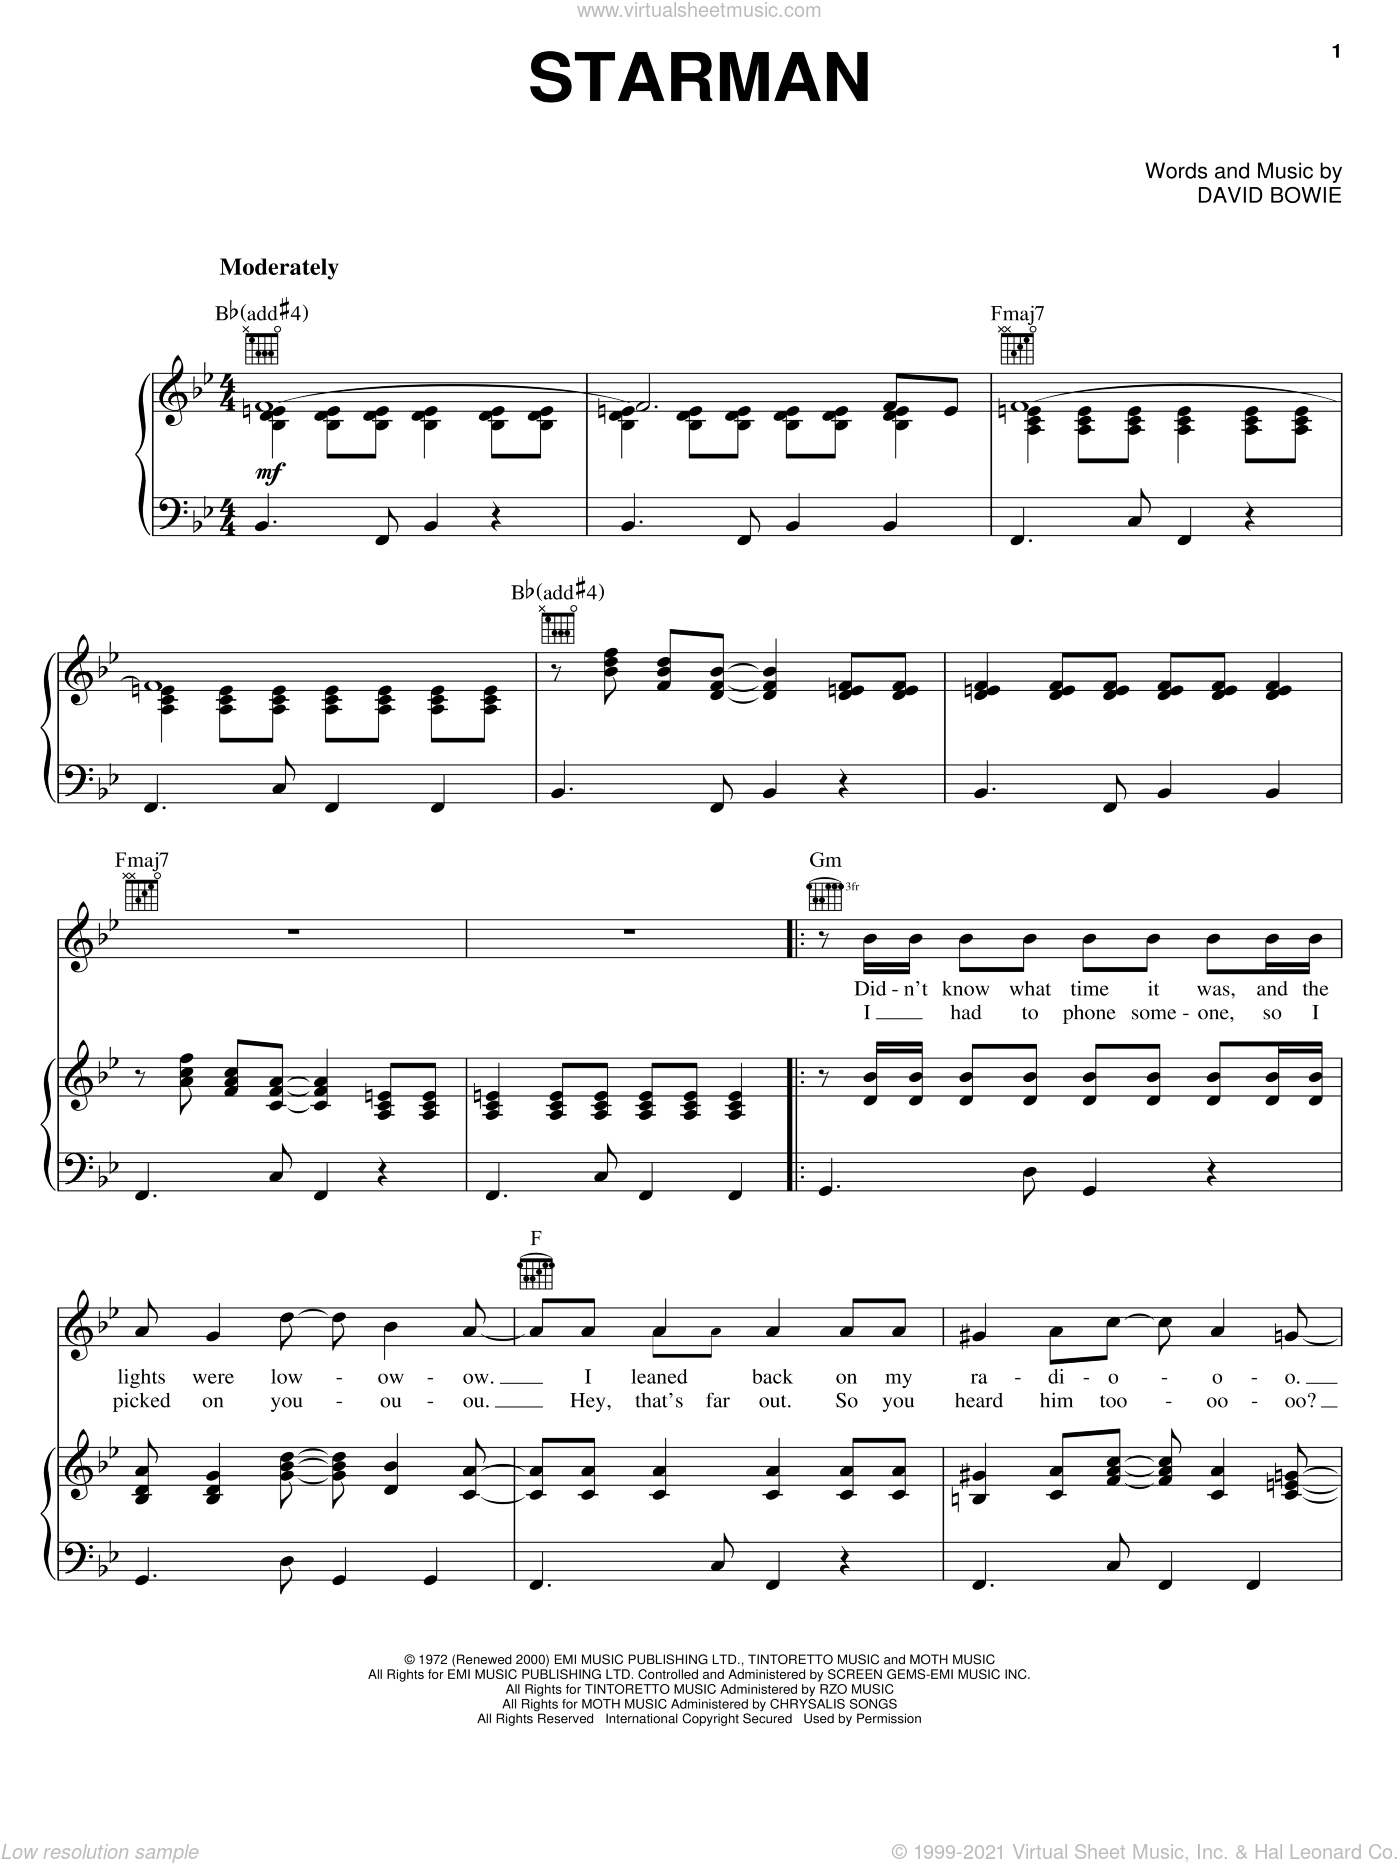 Starman sheet music for voice, piano or guitar by David Bowie